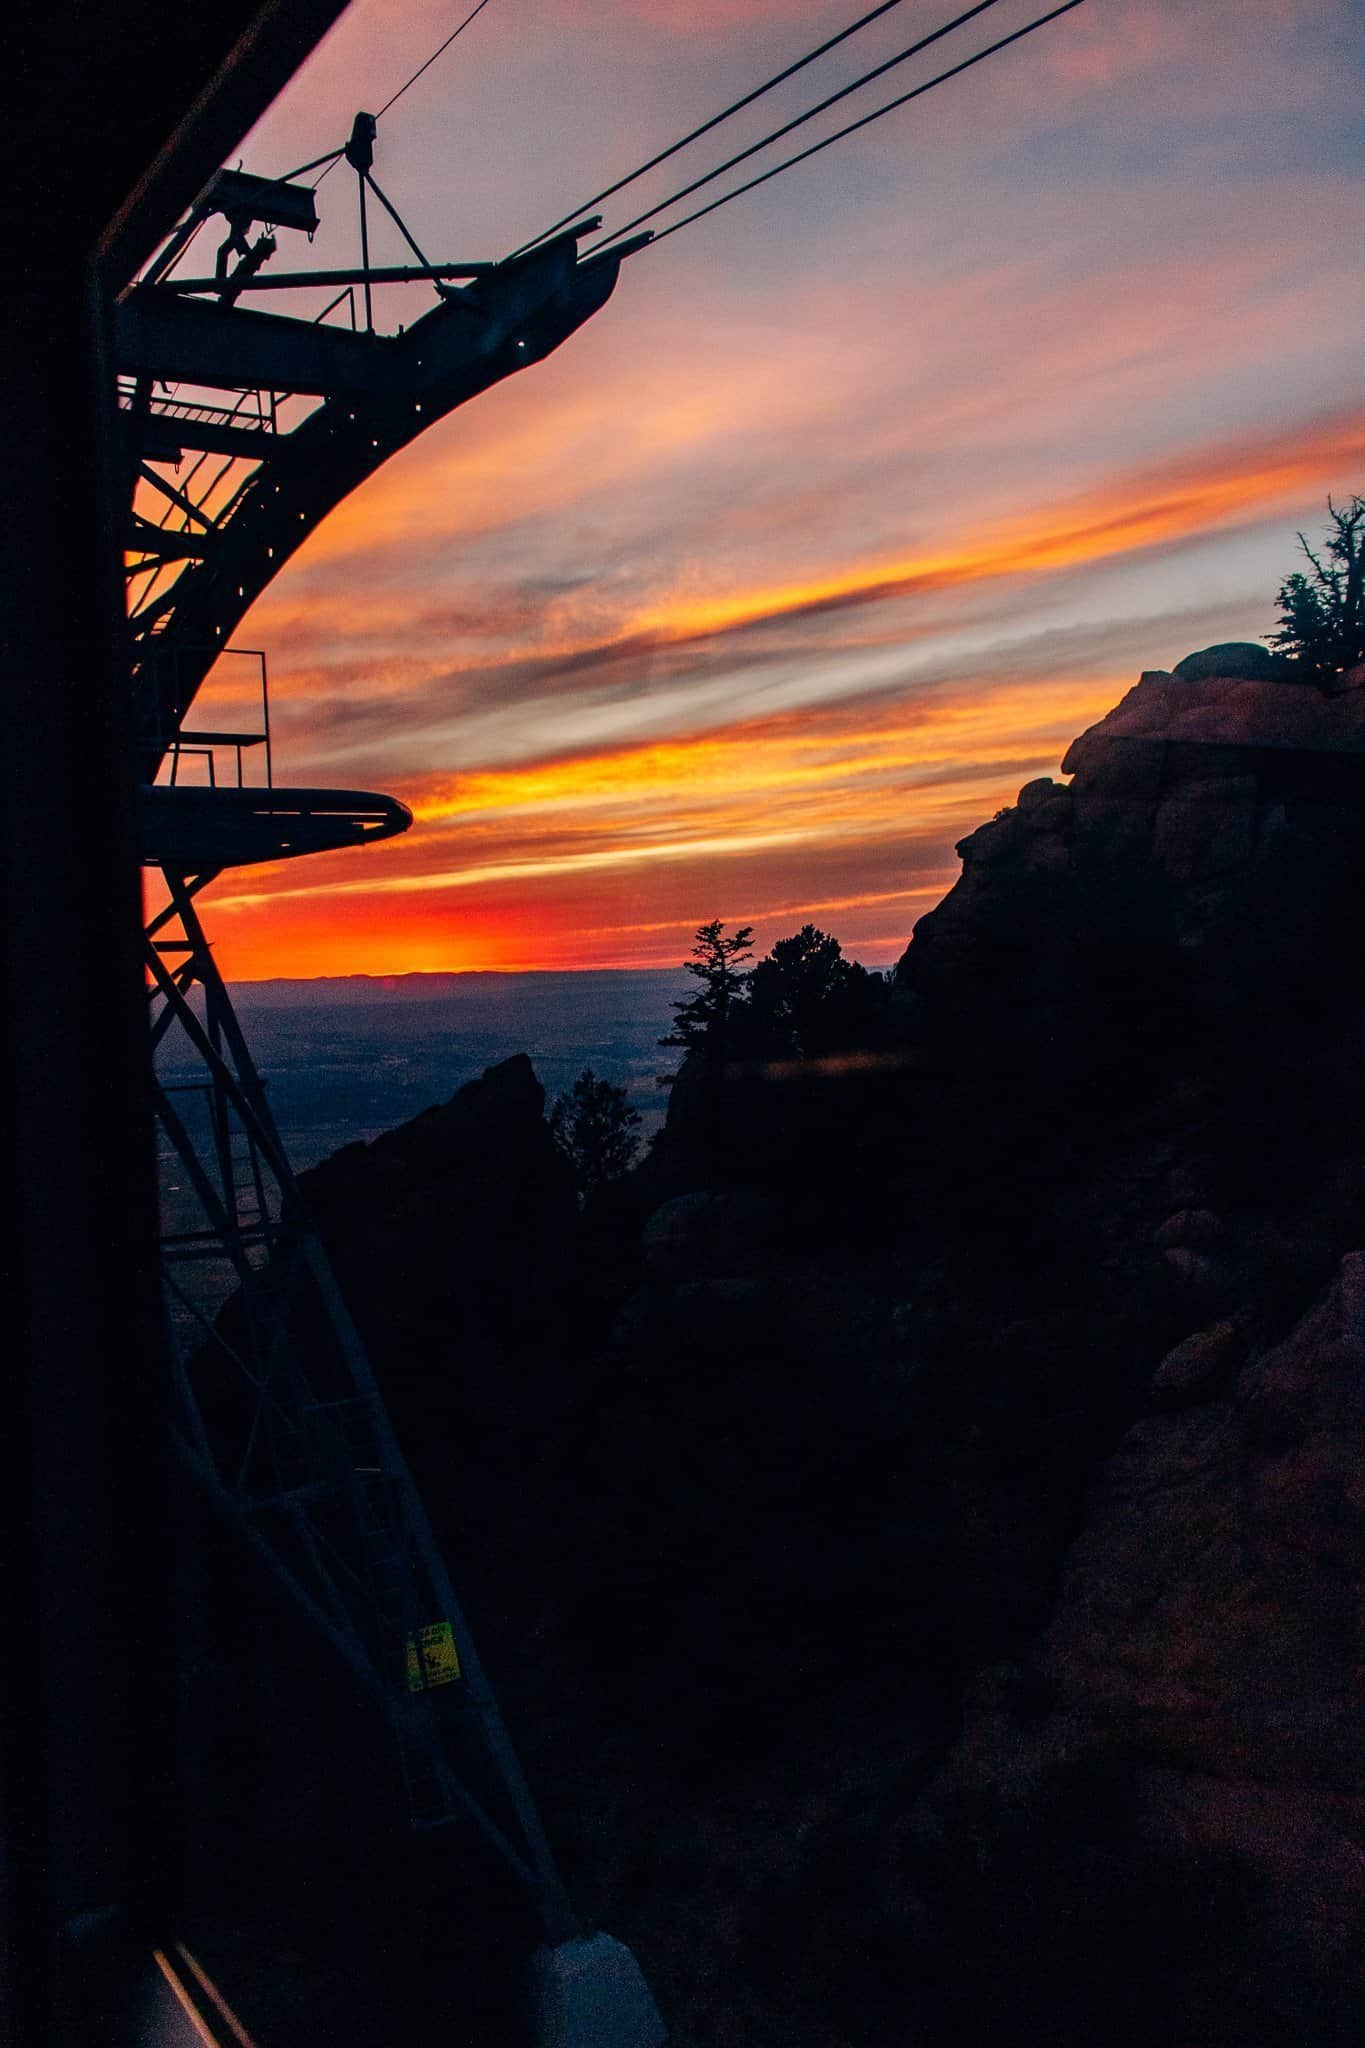 Sunset from Sandia Peak Tramway - The Next Trip